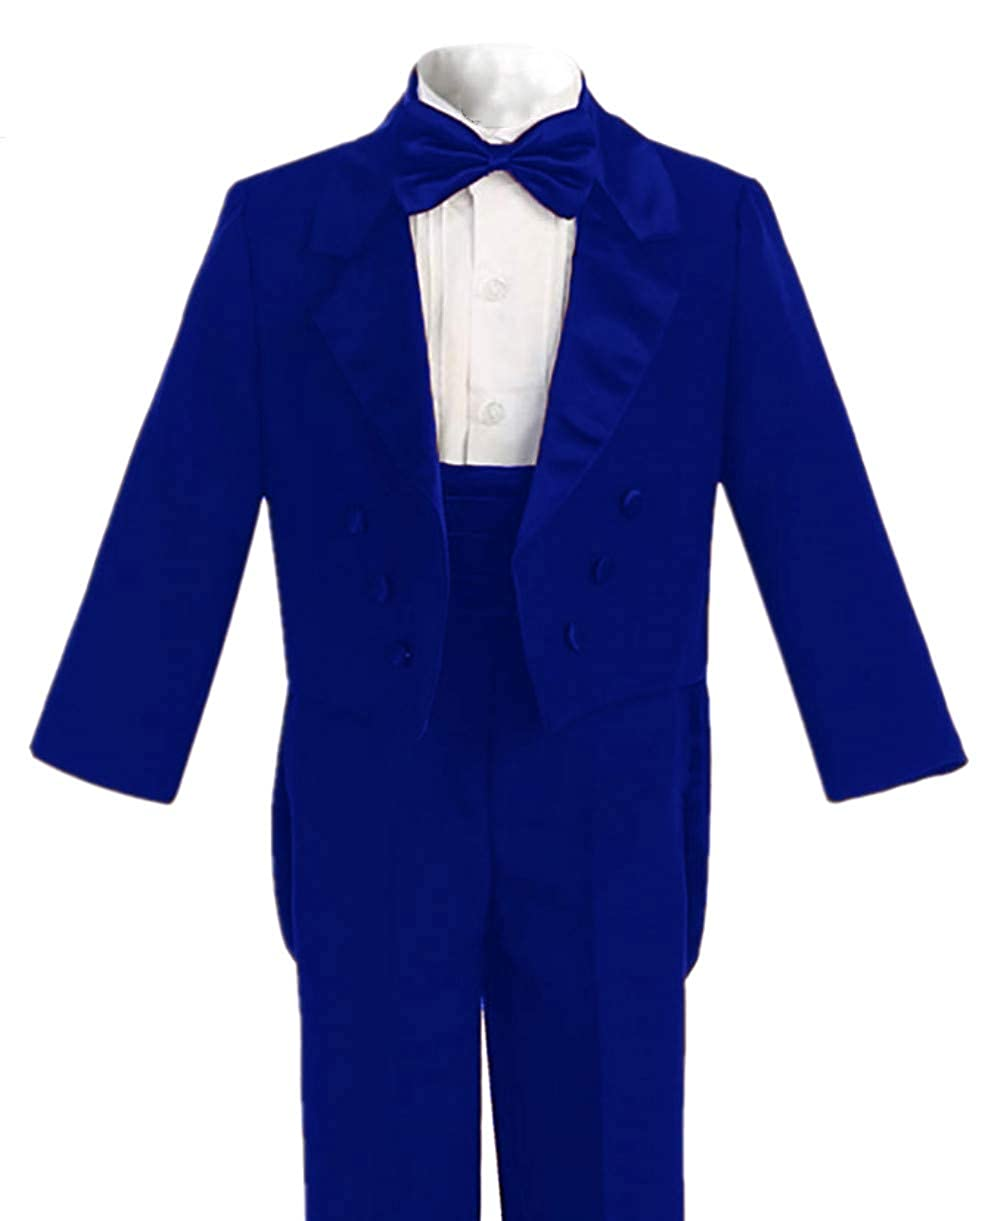 Everbeauty Boys Vintage 2 Pieces Tailcoat Suits for Wedding//Party Formal Outfits